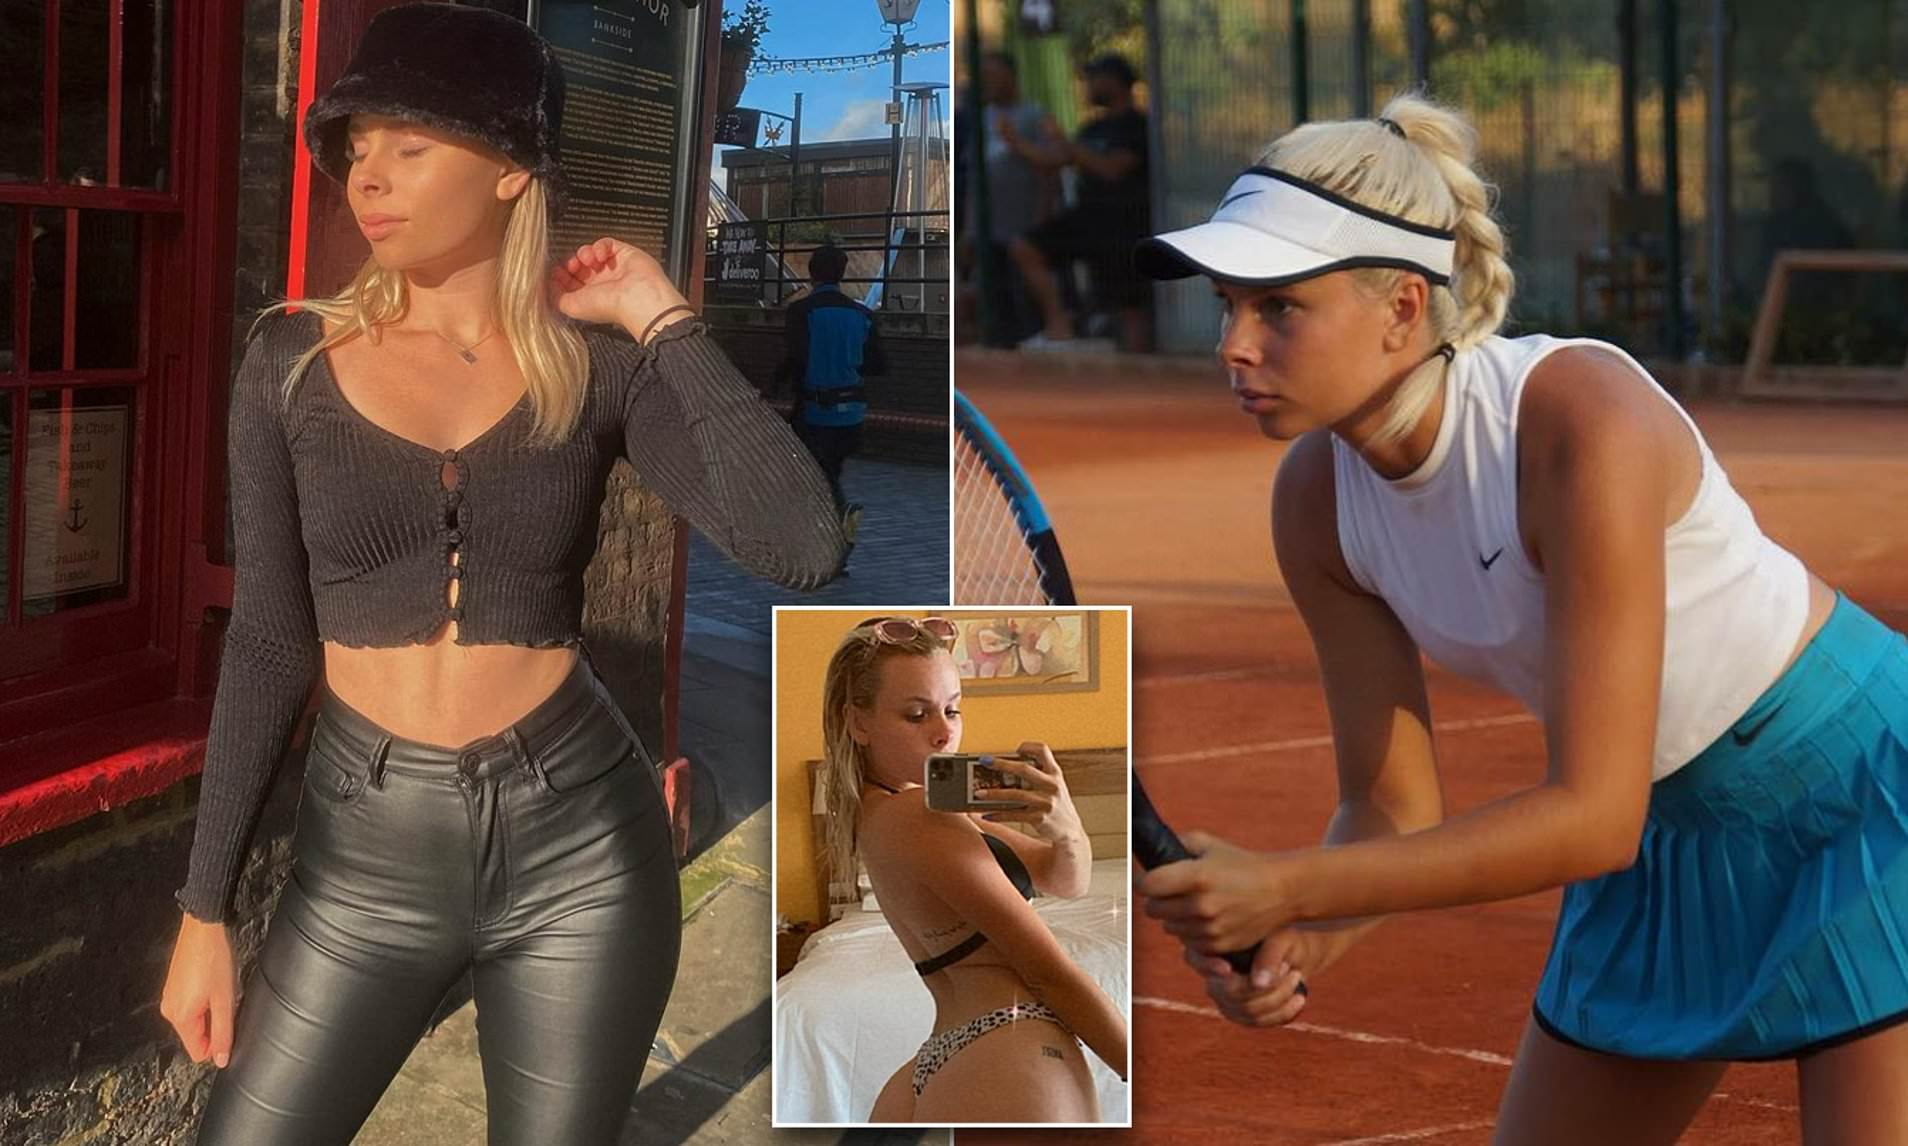 Tennis Prodigy Angelina Graovac Takes to Adult Content OnlyFans